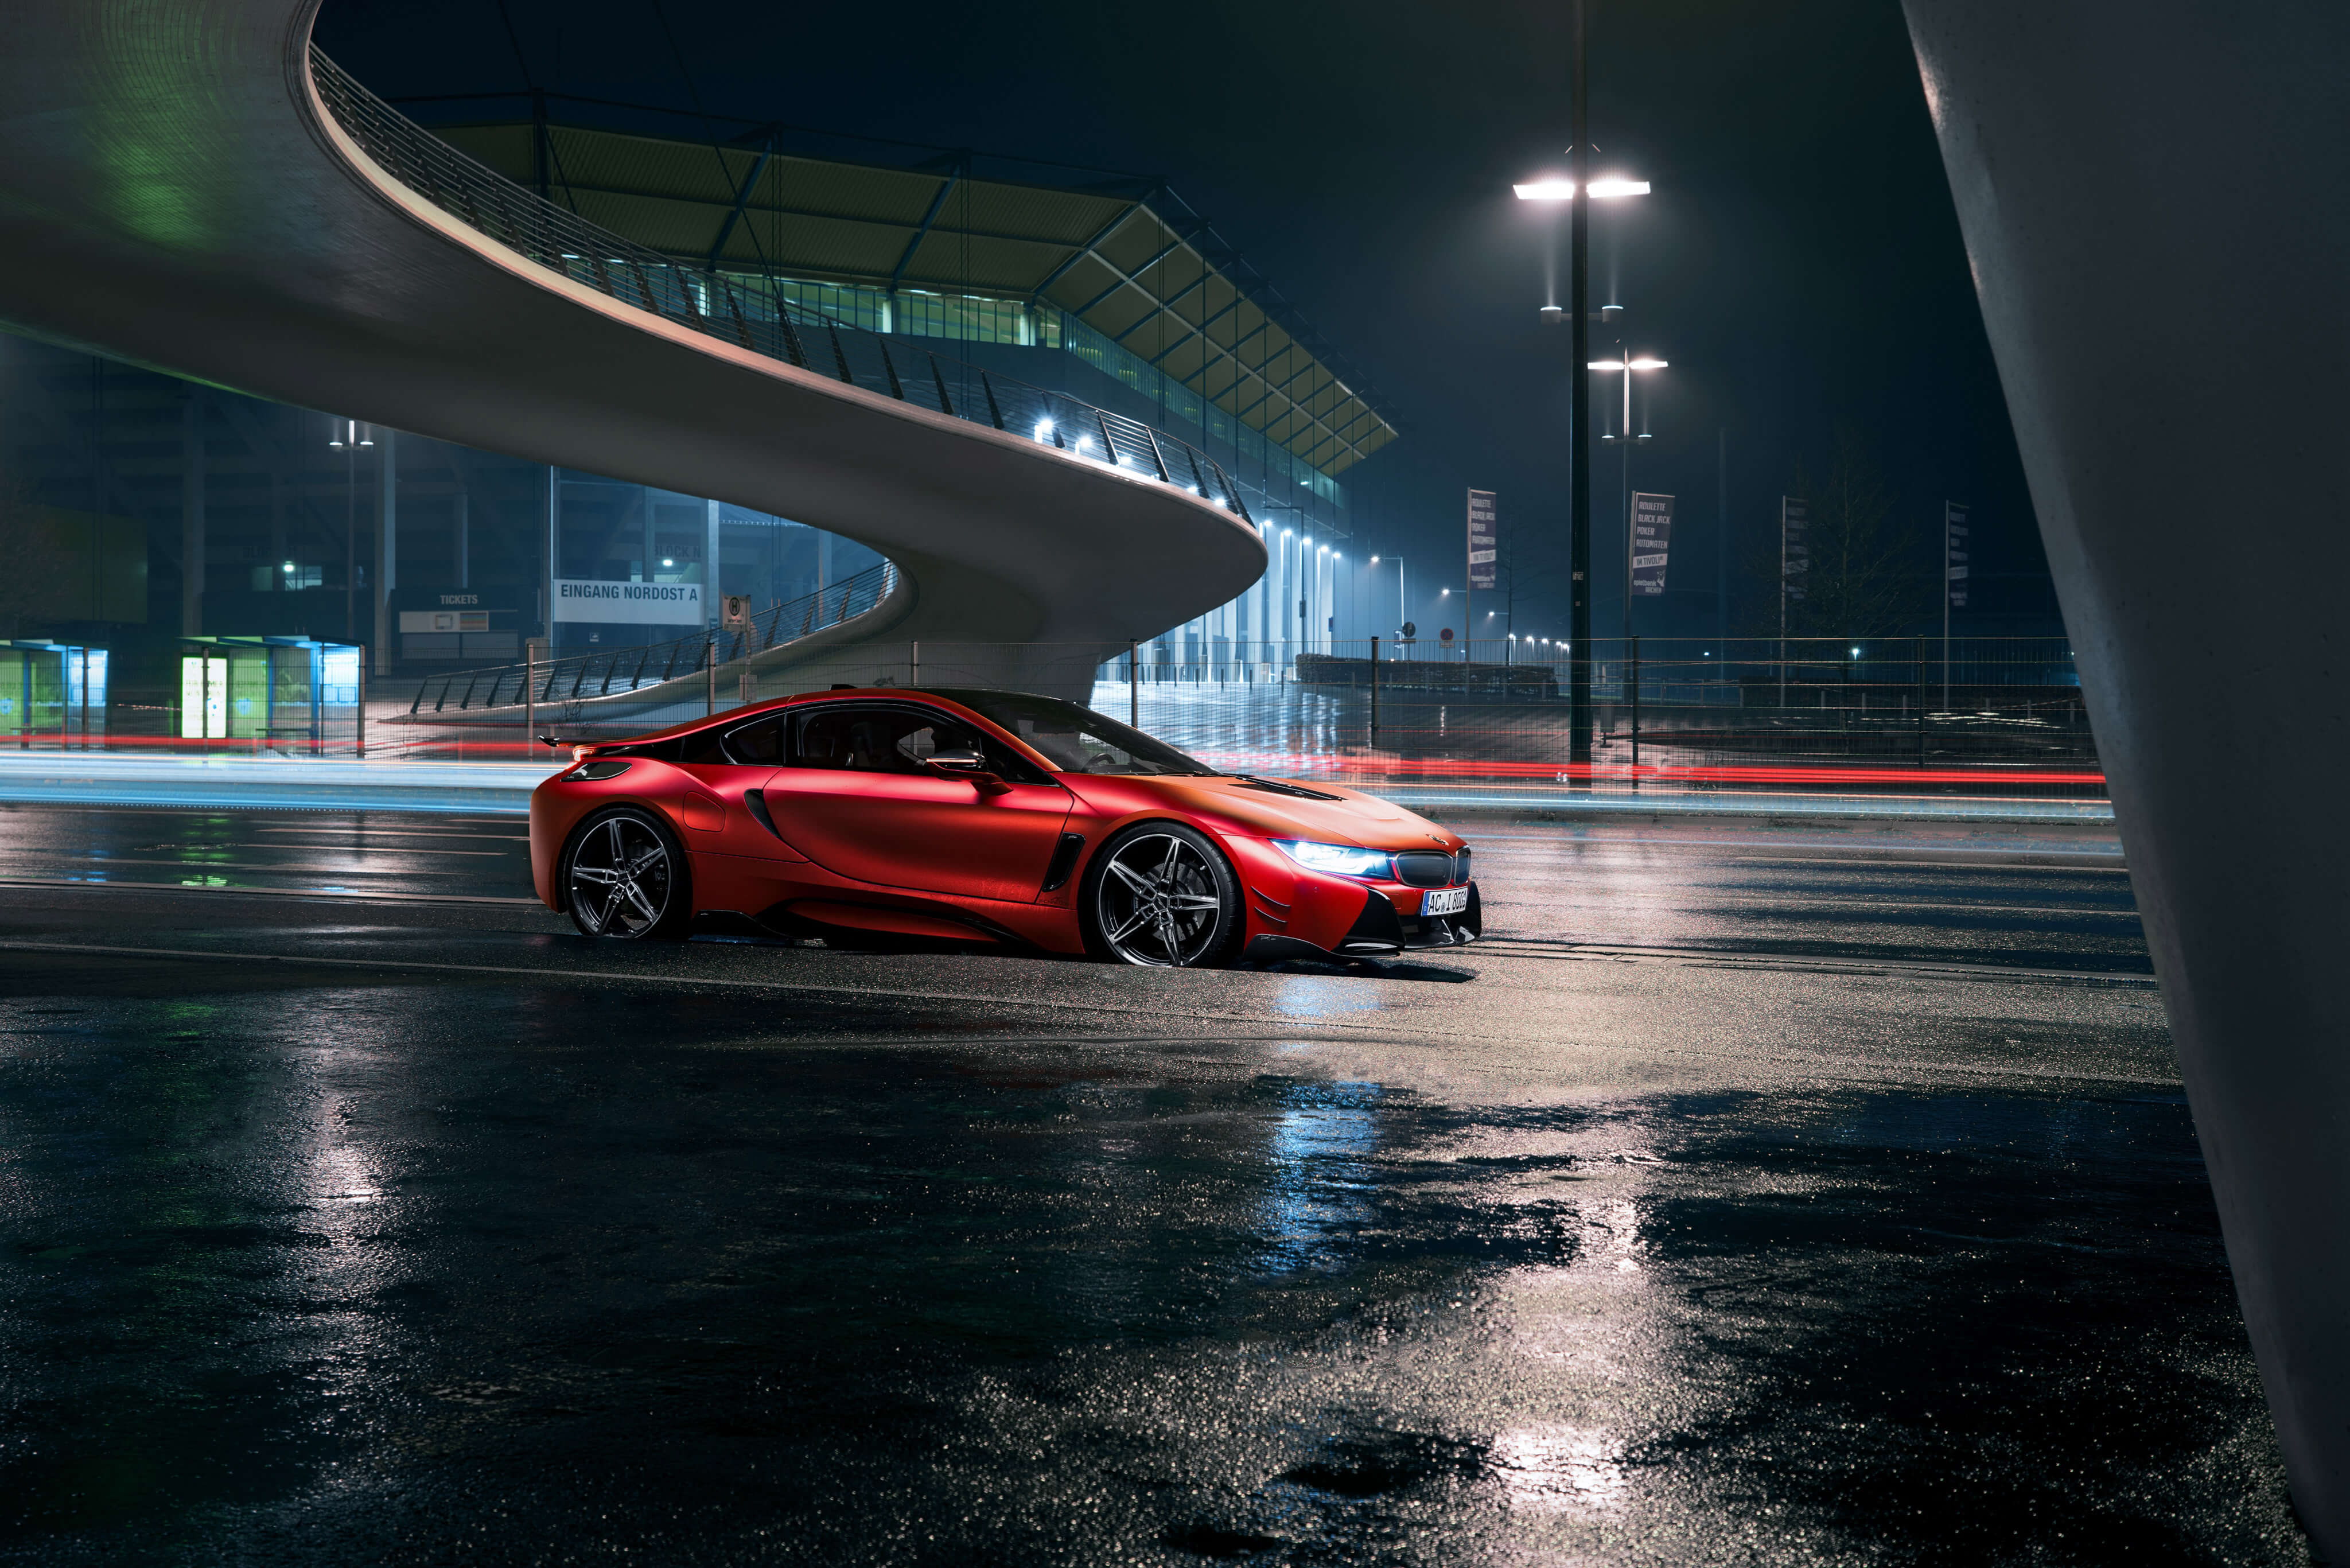 Topic For Bmw I8 Wallpaper 4k Red Bmw I8 Wallpaper 64648 4096x2733px Background 1920x1080 Hd Wallpapers Top Free Wallpaper Mission Impossib Images Cityconnectapps